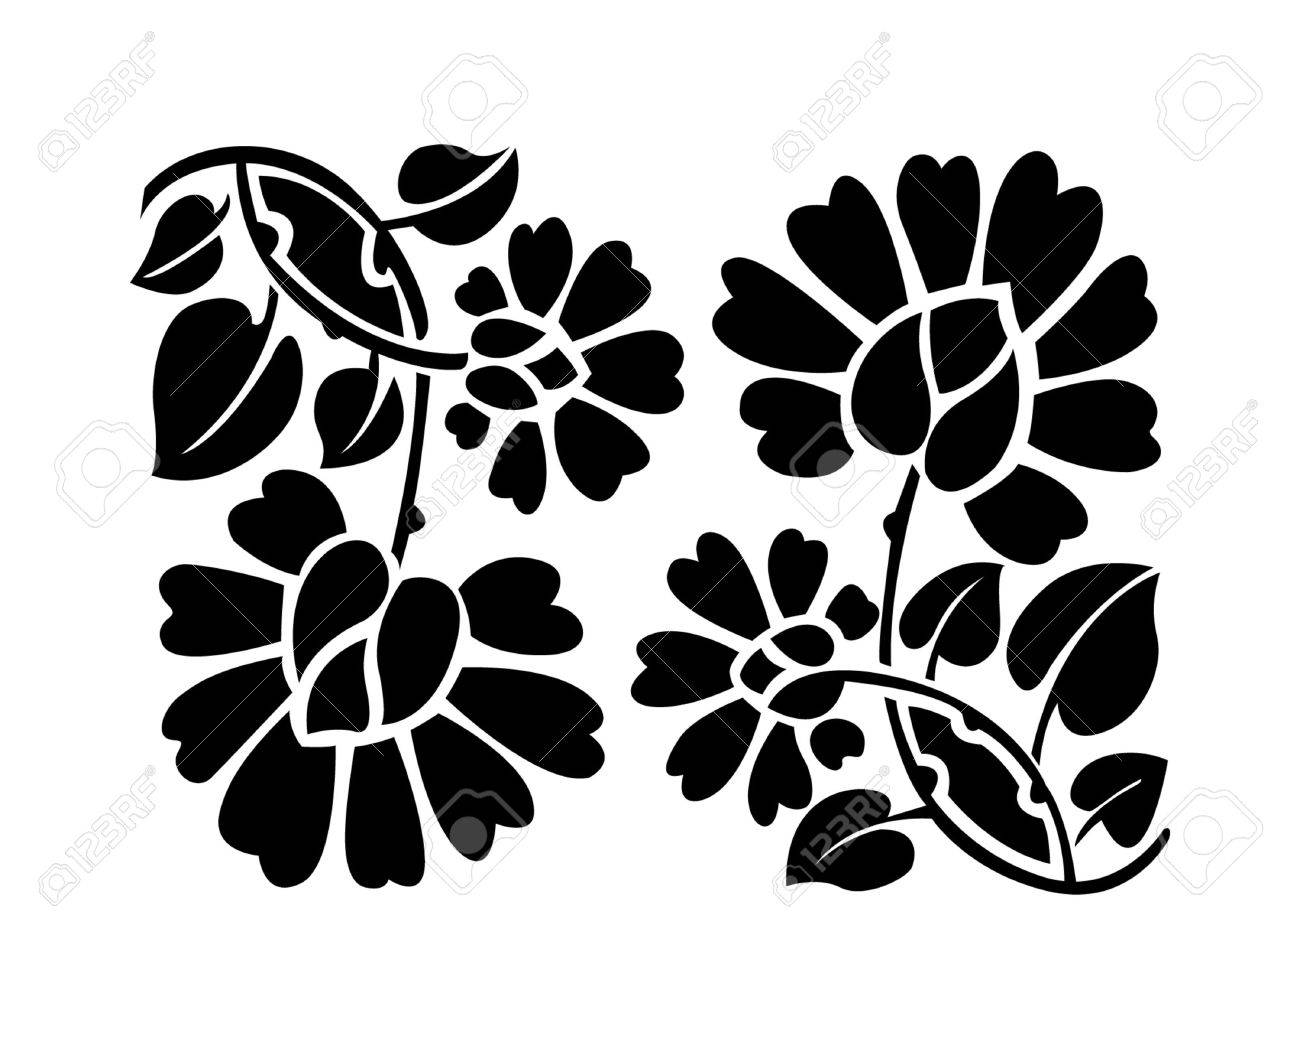 Line Drawing Flower Vector : Black flower pattern vector illustration royalty free cliparts